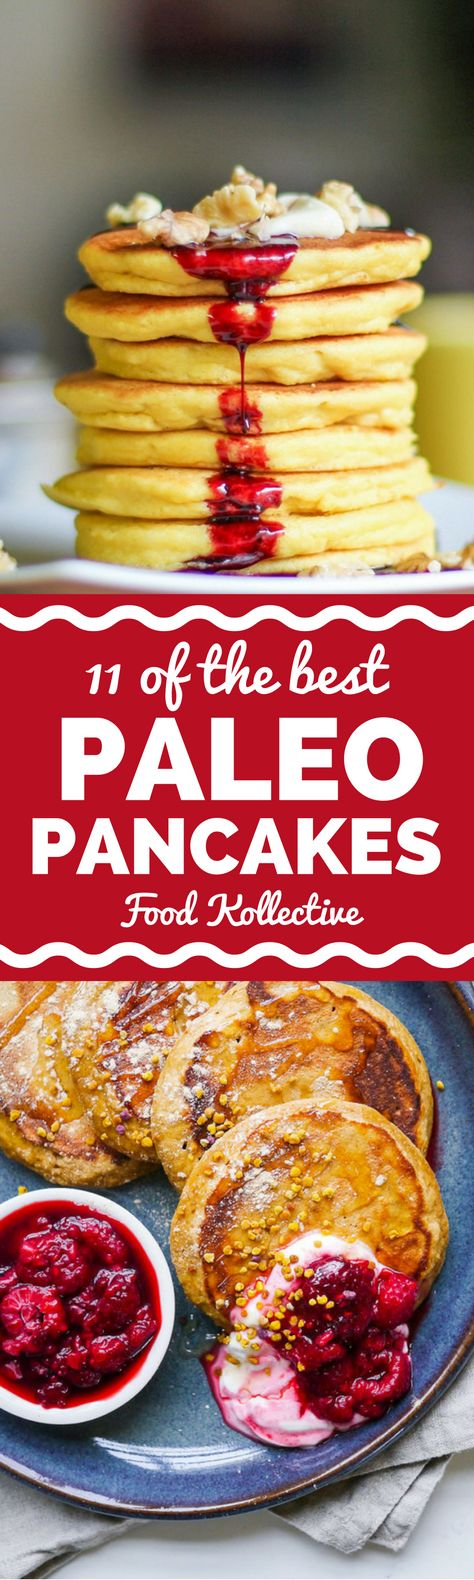 I was looking for the best Paleo pancakes and these look perfect! There are recipes with coconut flour, banana, pumpkin, and more. They would be perfect for a grain free brunch or Paleo breakfast. Collected on FoodKollective.com